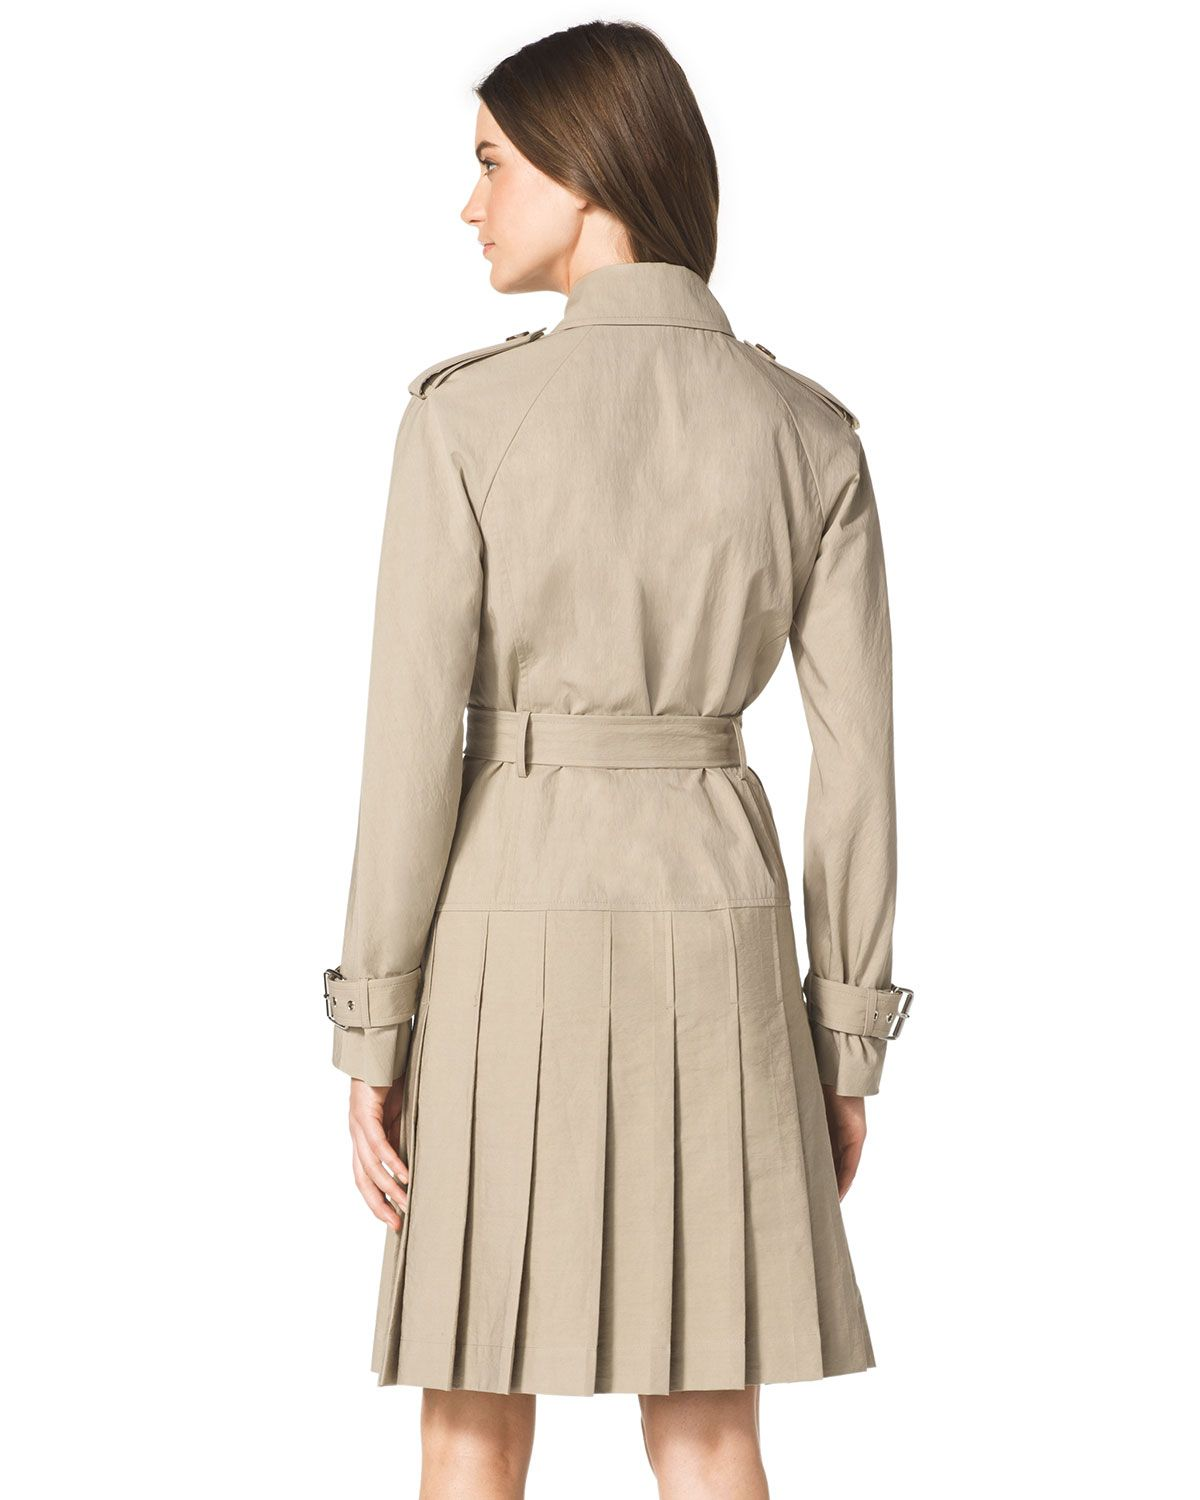 f6e50e5c6 Lyst - Michael Kors Pleated Trenchcoat Dress in Natural | coat dress ...